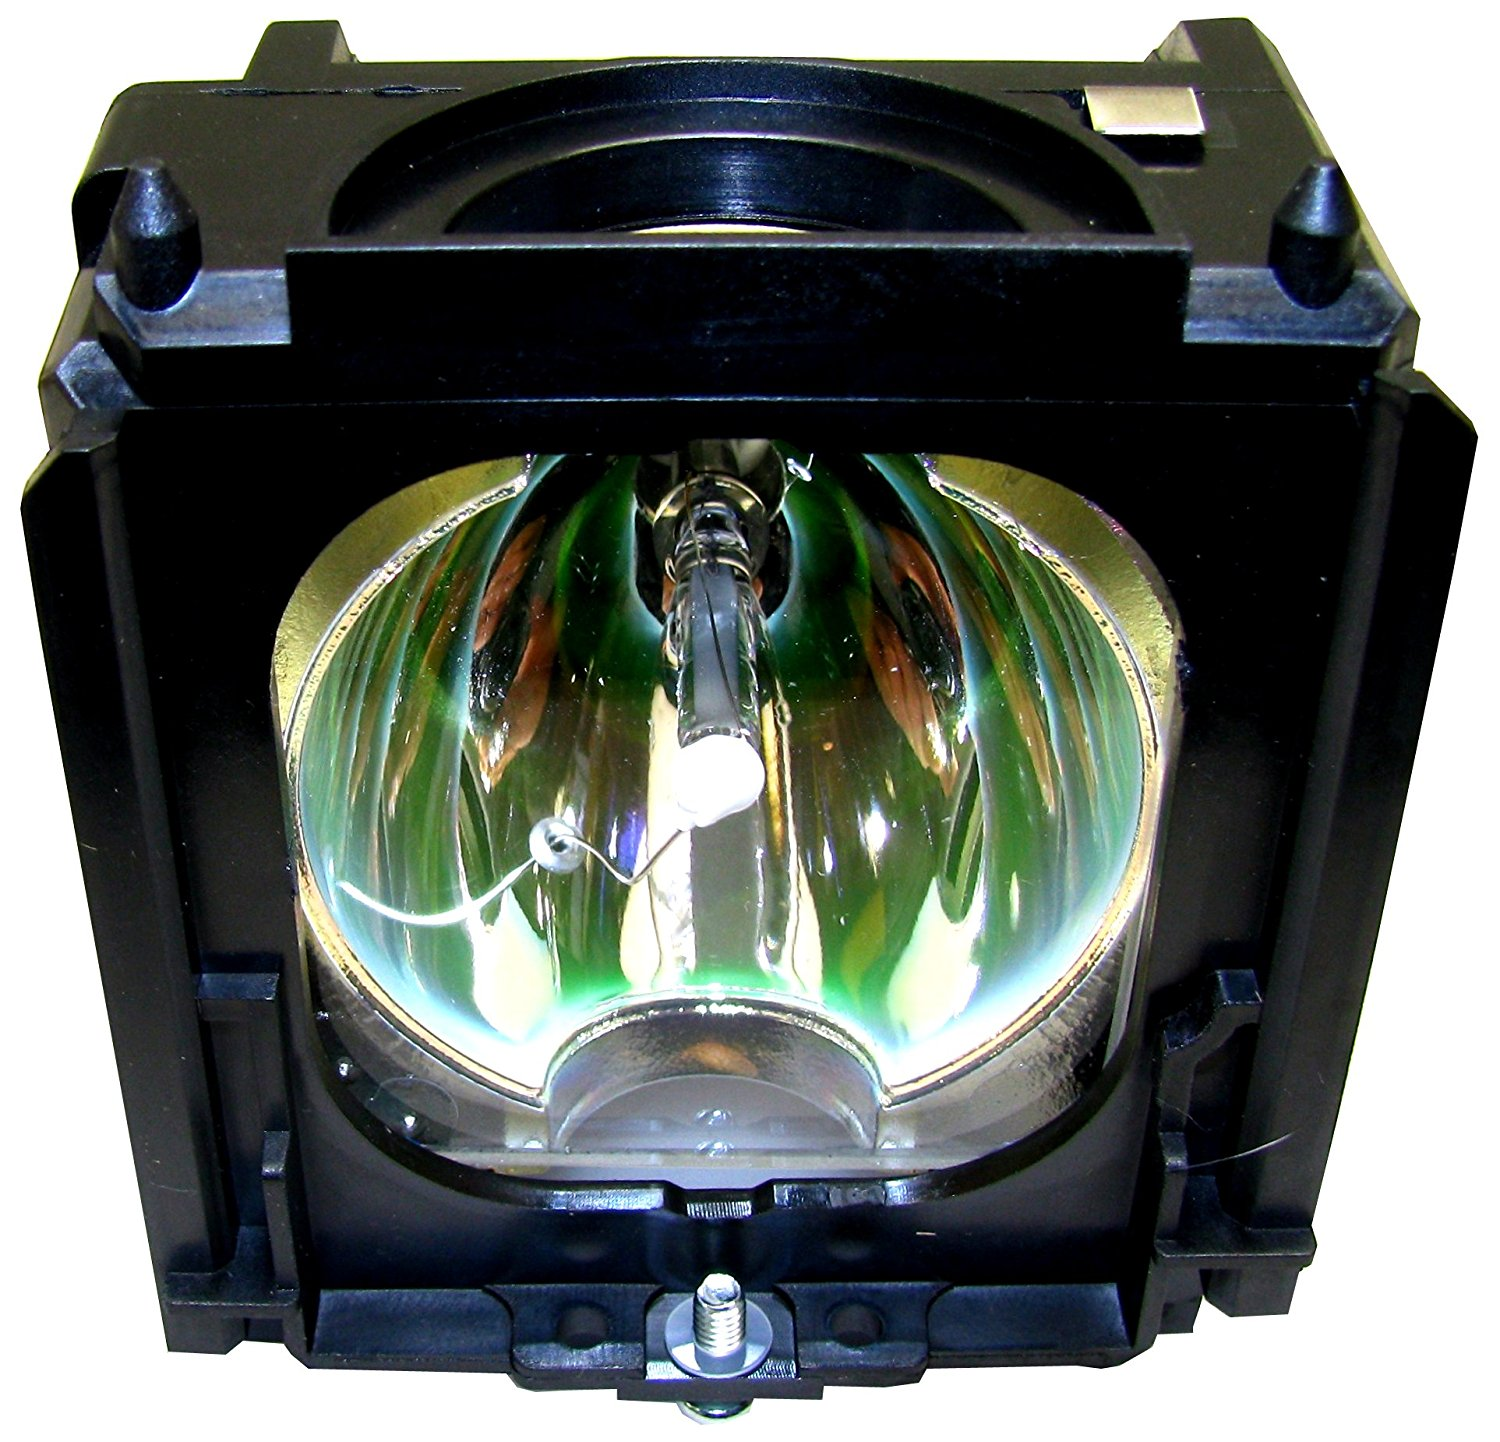 Brand NEW TV Projector Lamp With Housing BP96-01472A for Samsung HL-S4265W HL-S5065W HL-S5066WX HL-S5086WX HL-S5087W HL-S5688WX projector lamp tv lamp bp96 01472a with housing for samsung hls5686wx xaa hl s5086wx bp96 01600a